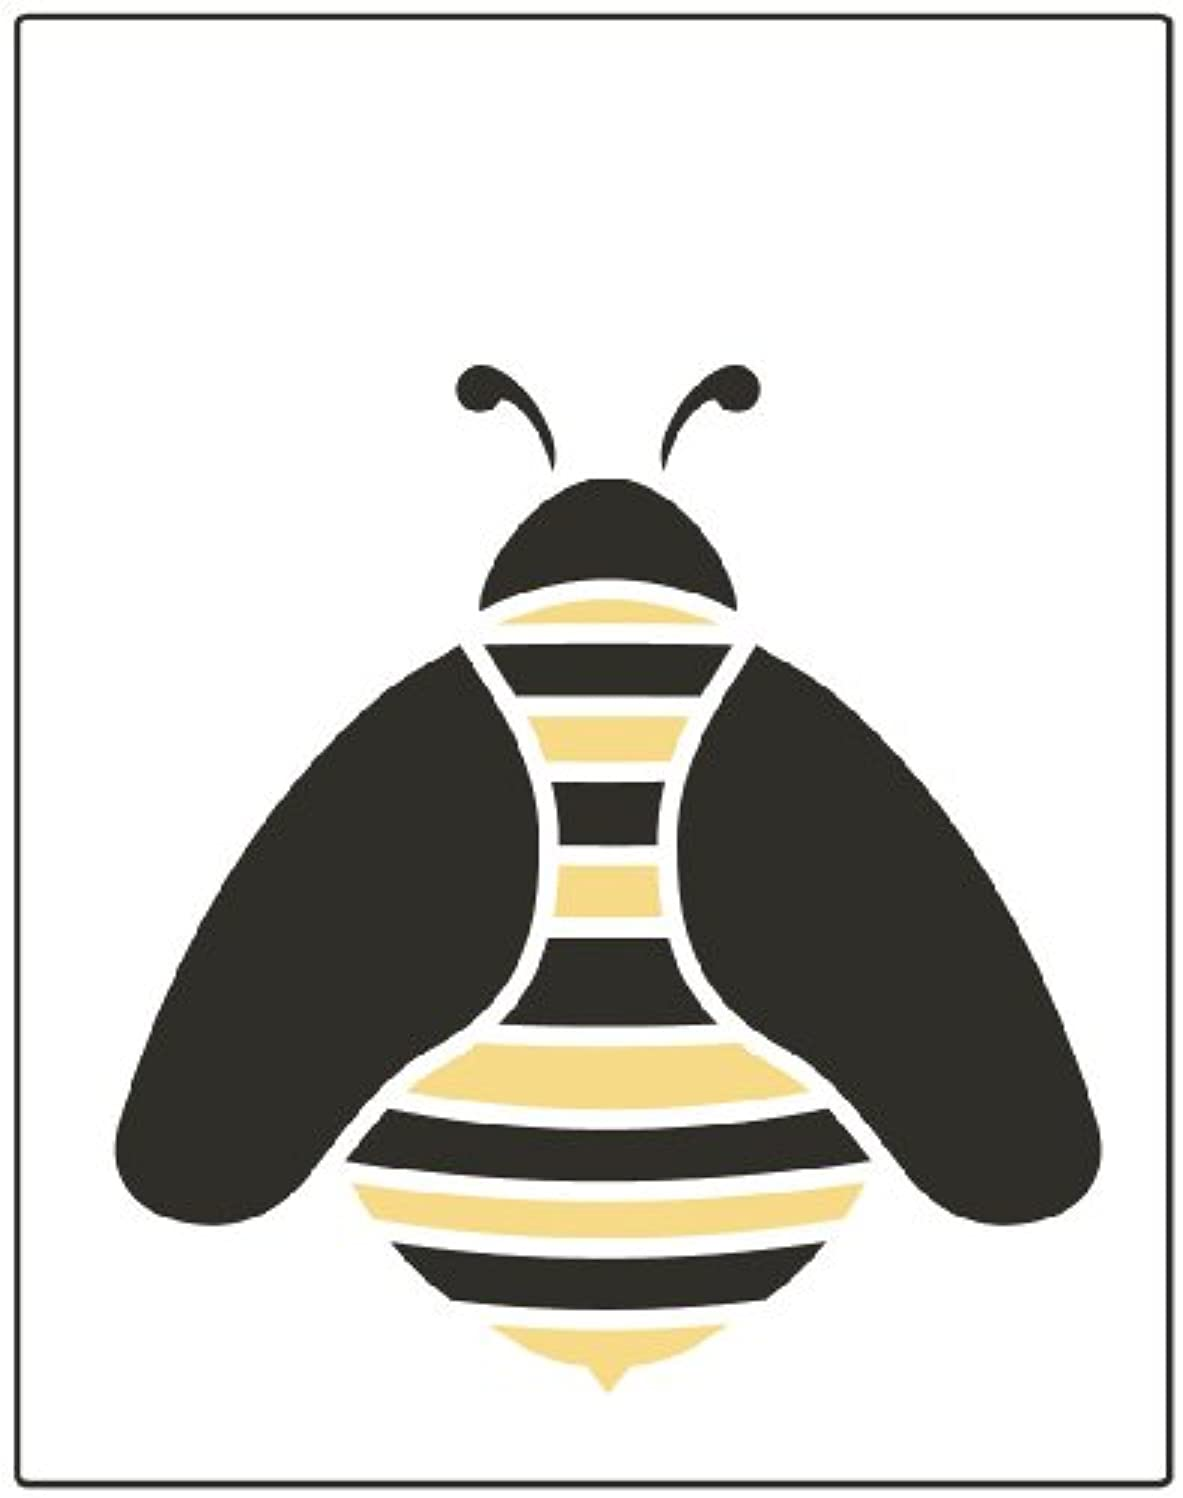 Faux Like a Pro Bumble Bee Stencil, 5.5 by 7-Inch, Single Overlay